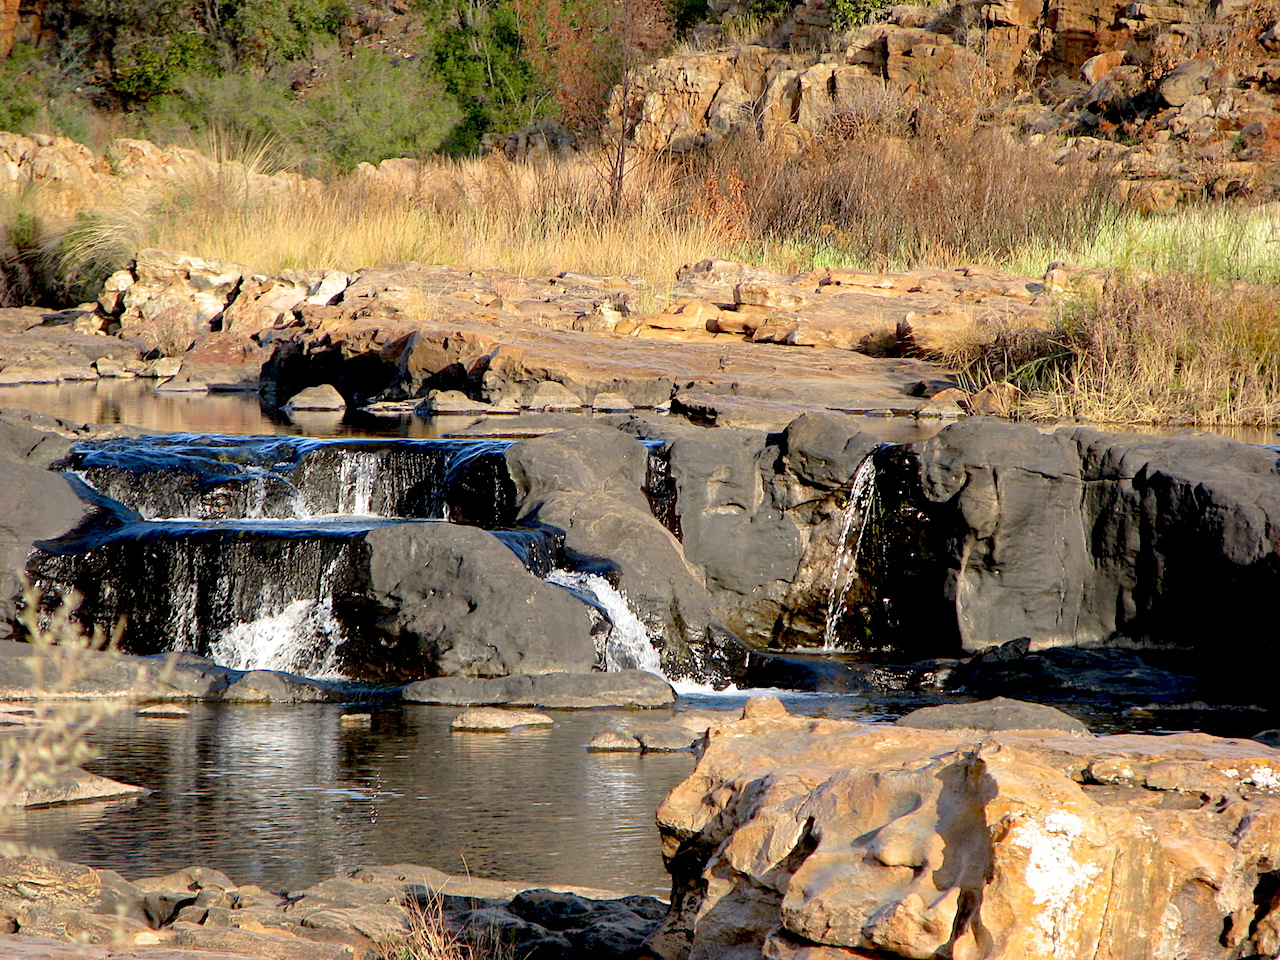 20 Photos That Will Make You Want to Visit South Africa #SouthAfrica #Safari #KrugerPark #CapeTown #VisitRSA #VisitSouthAfrica #SouthAfricaTrip #AfricaTravel #WorldTravel #TravelBlog